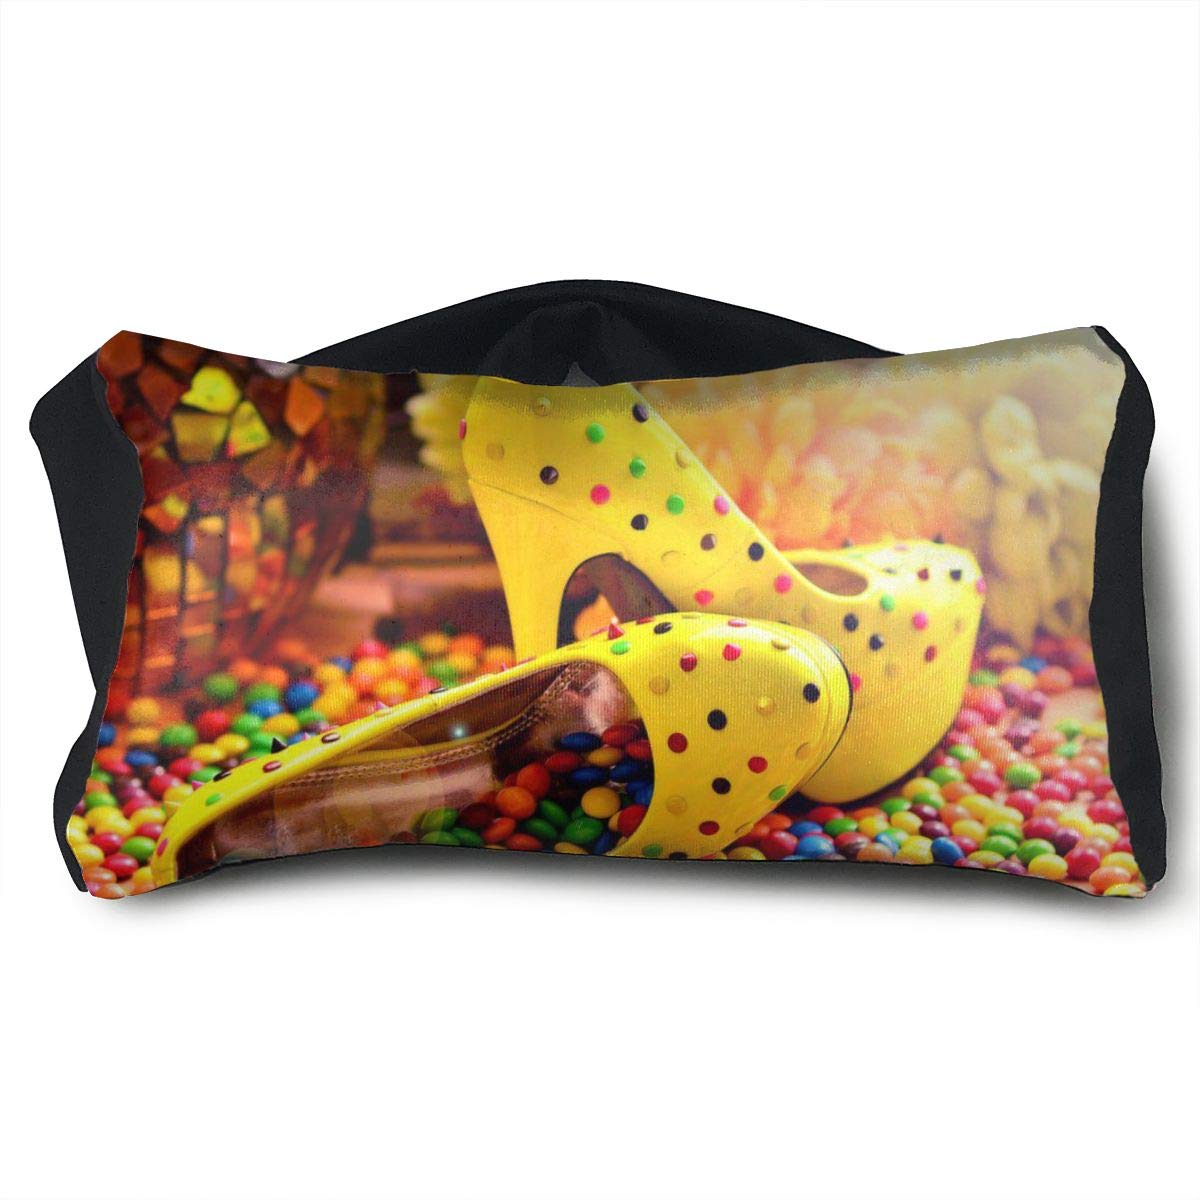 Eye Pillow Sleep Mask for Sleeping Migraine Headaches Stress Relief Candy Shoes Eyeshade